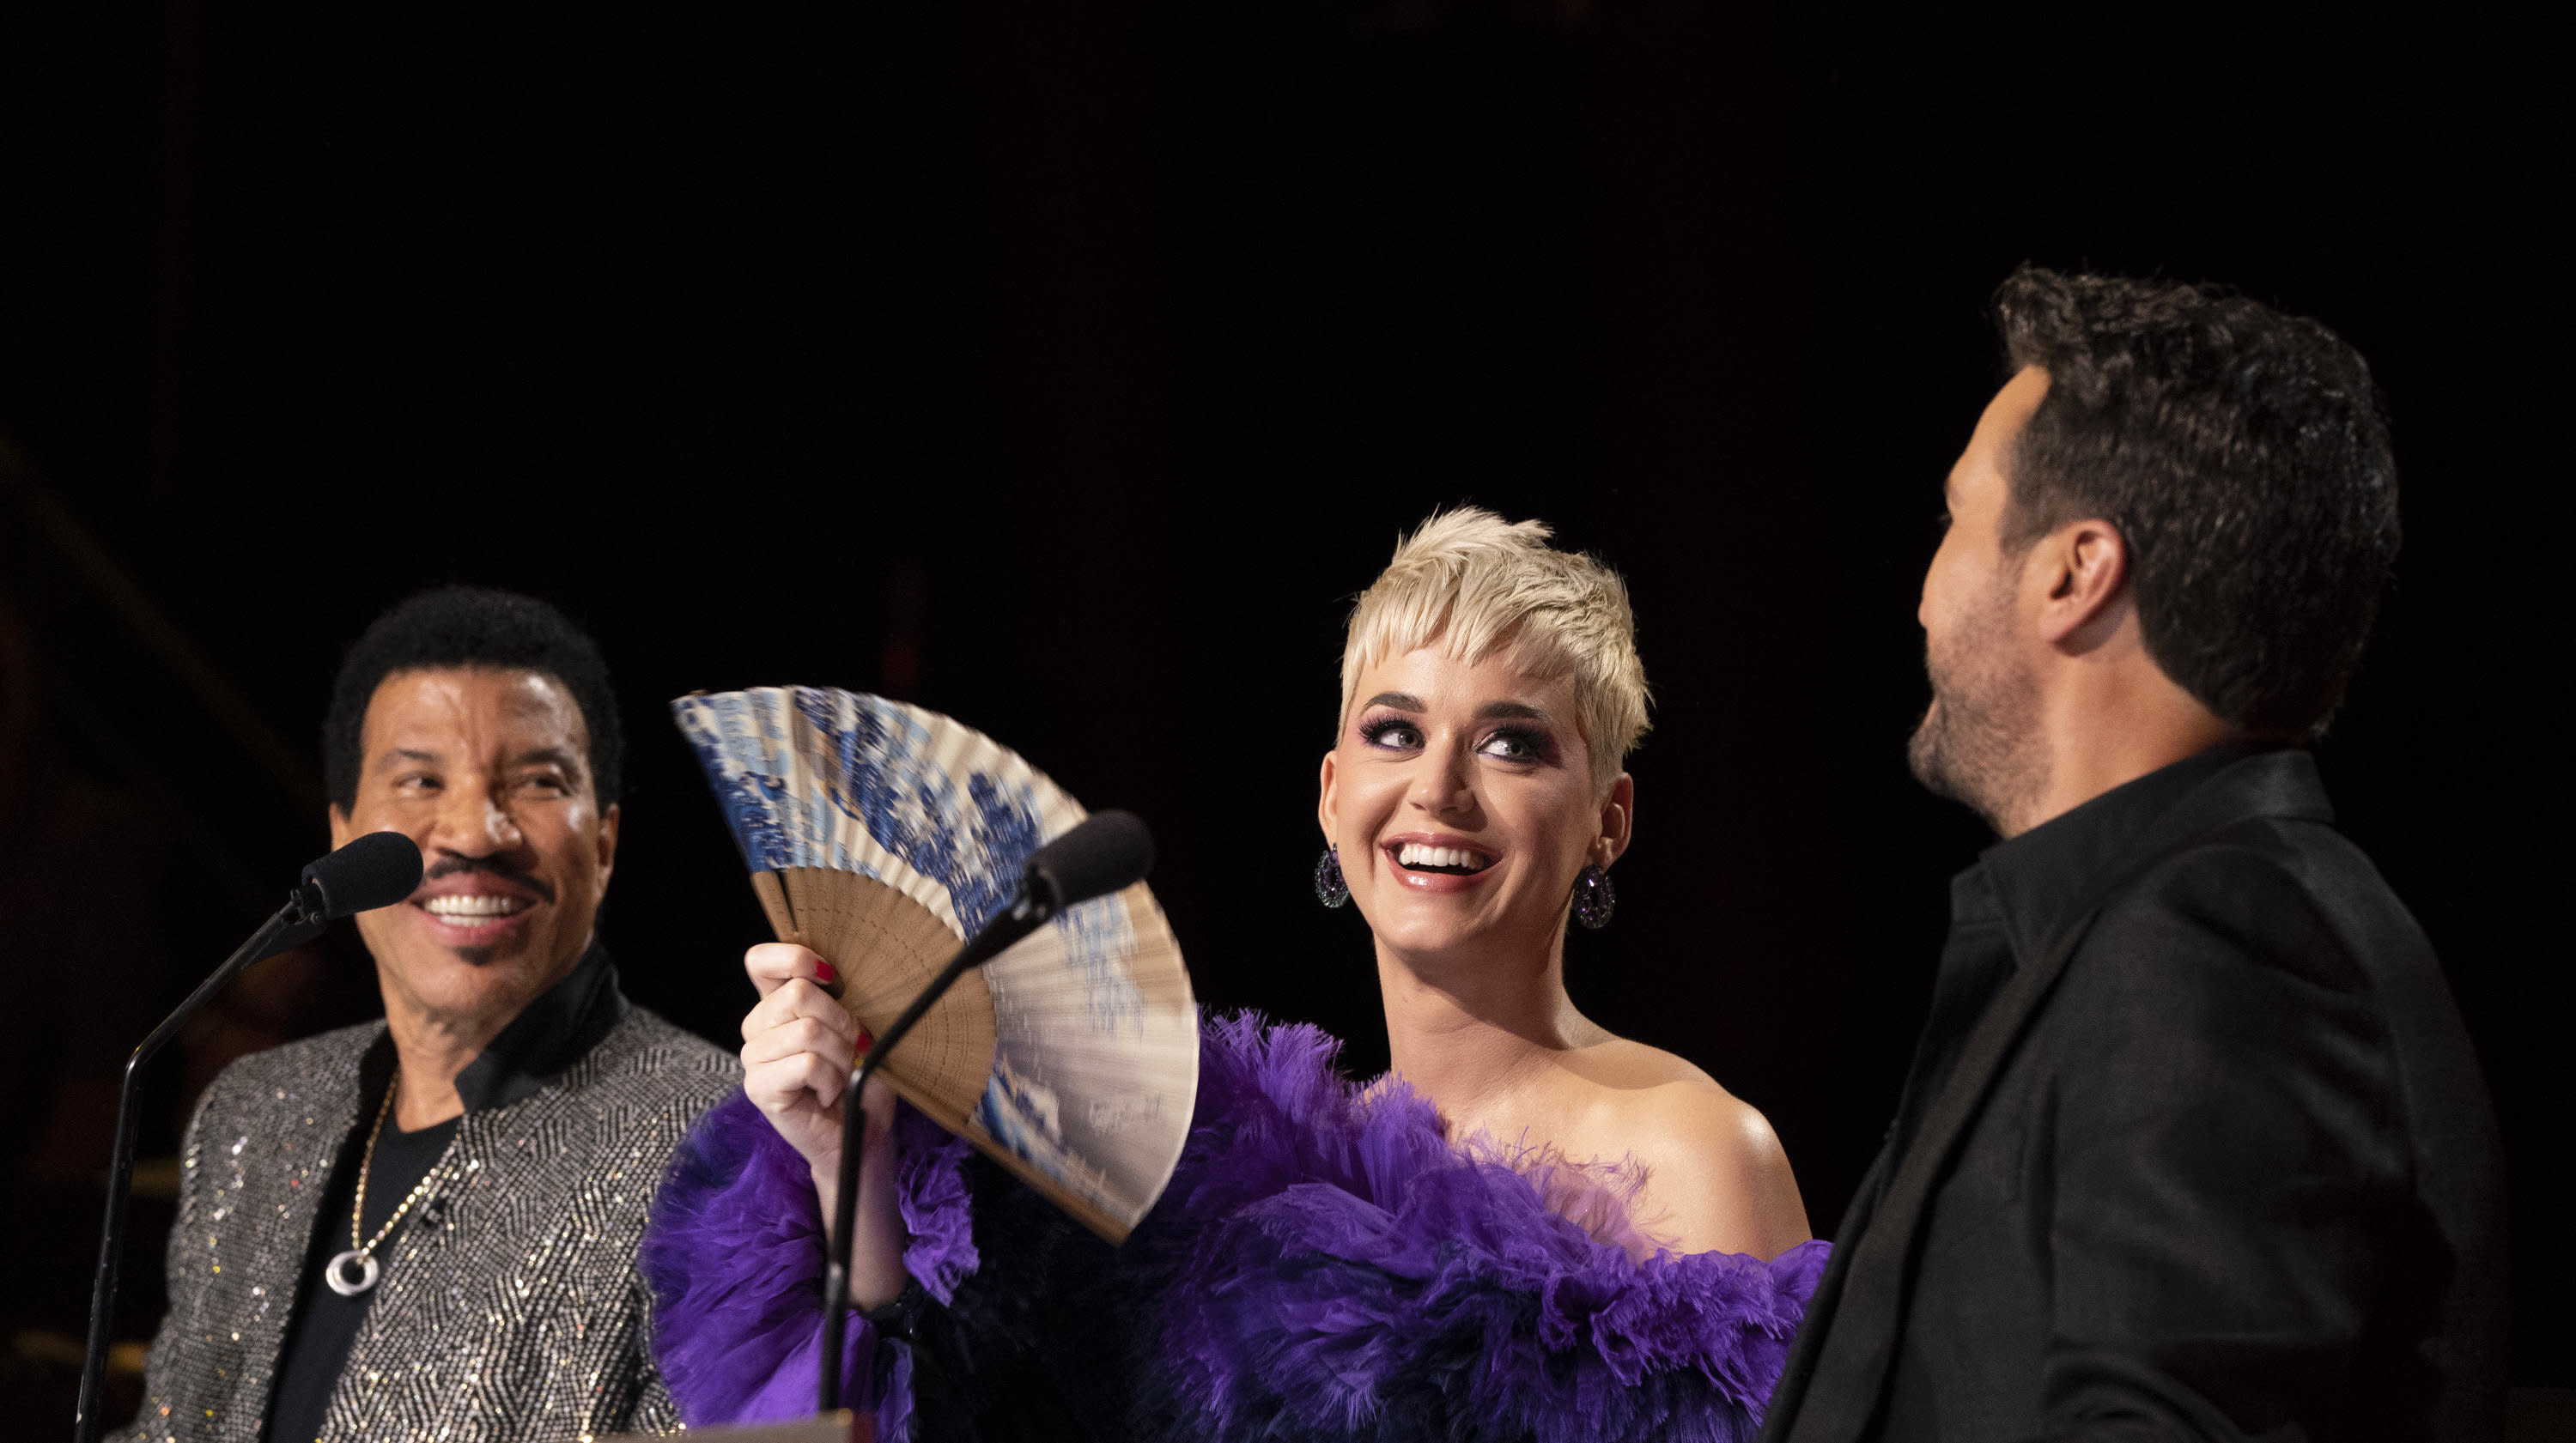 Katy Perry Says She's 'Not Single' On 'American Idol'